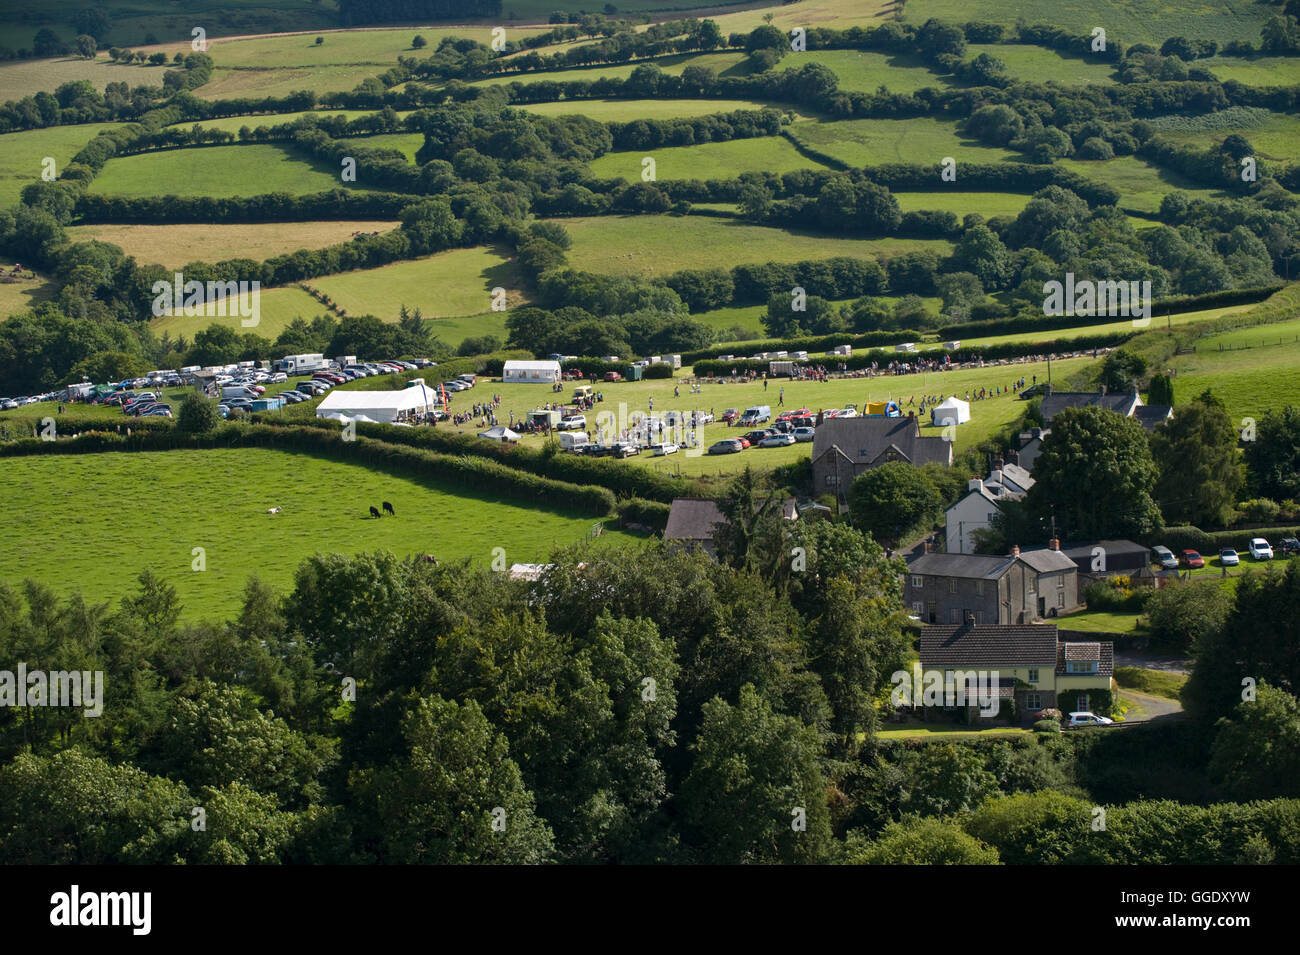 View over Gwenddwr Show and village, Gwenddwr, near Builth Wells, Powys, Wales, UK - Stock Image